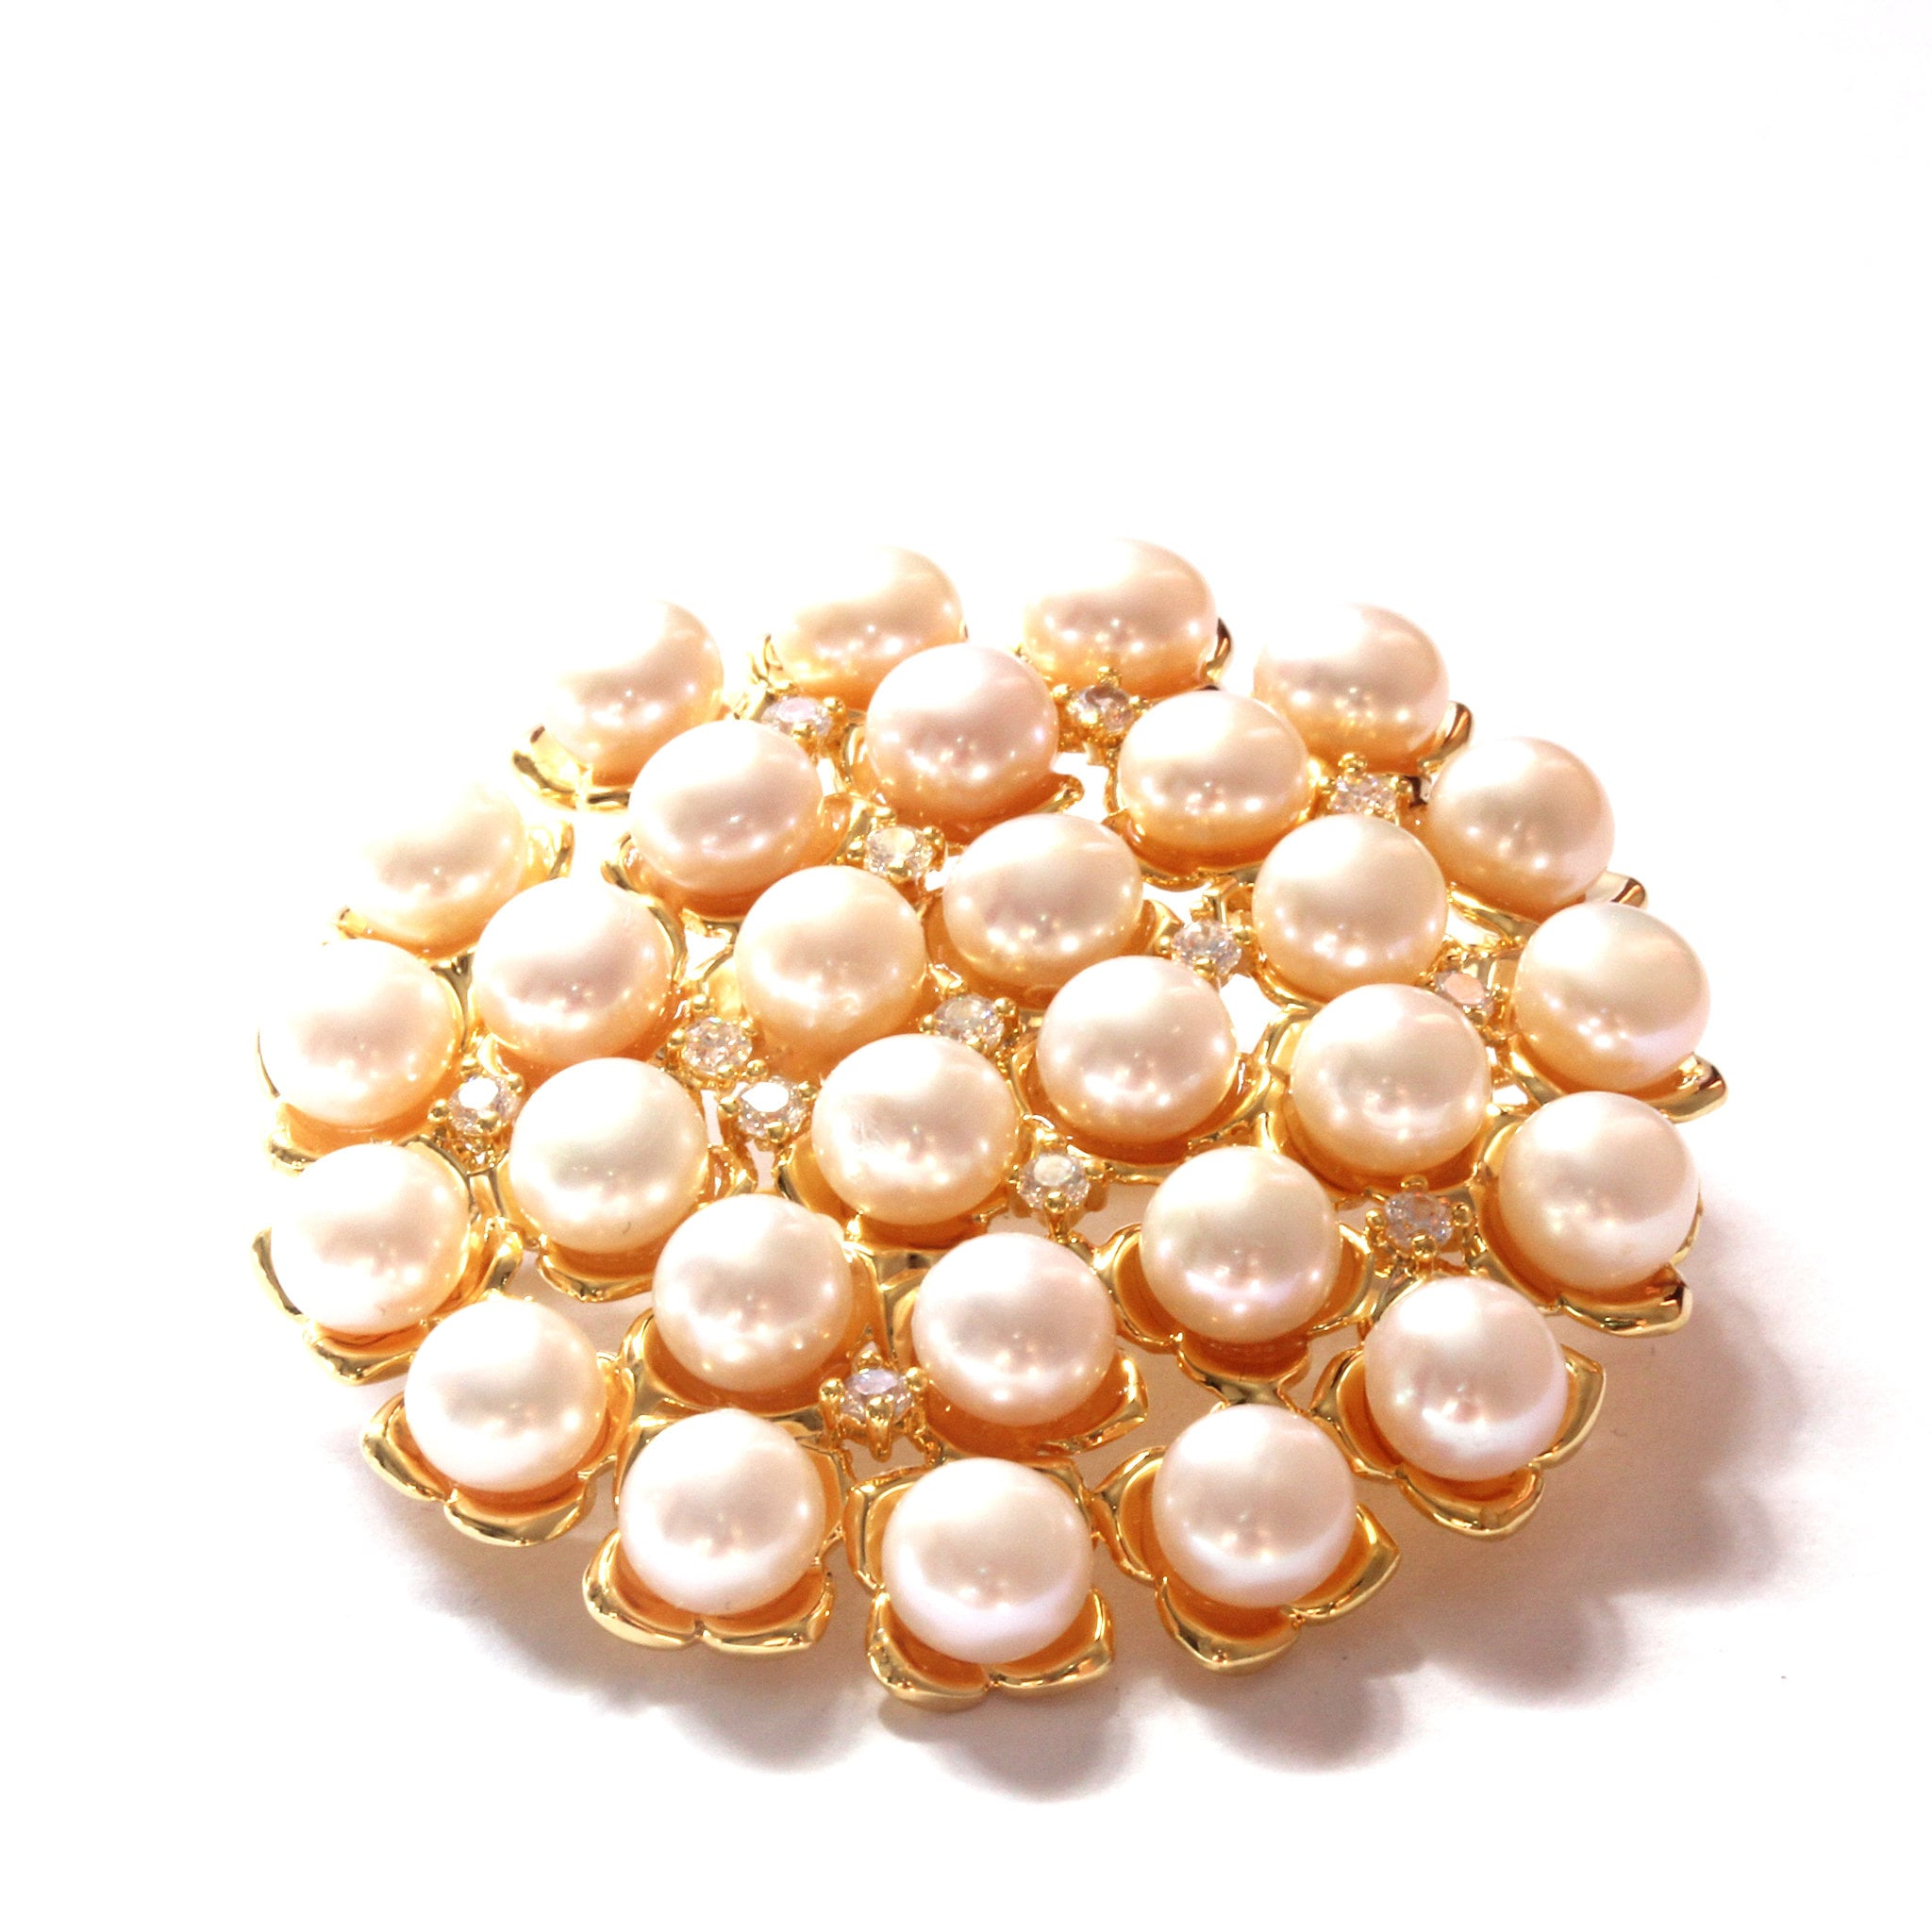 White Freshwater Cultured Pearl Brooch 5.5-6.0mm